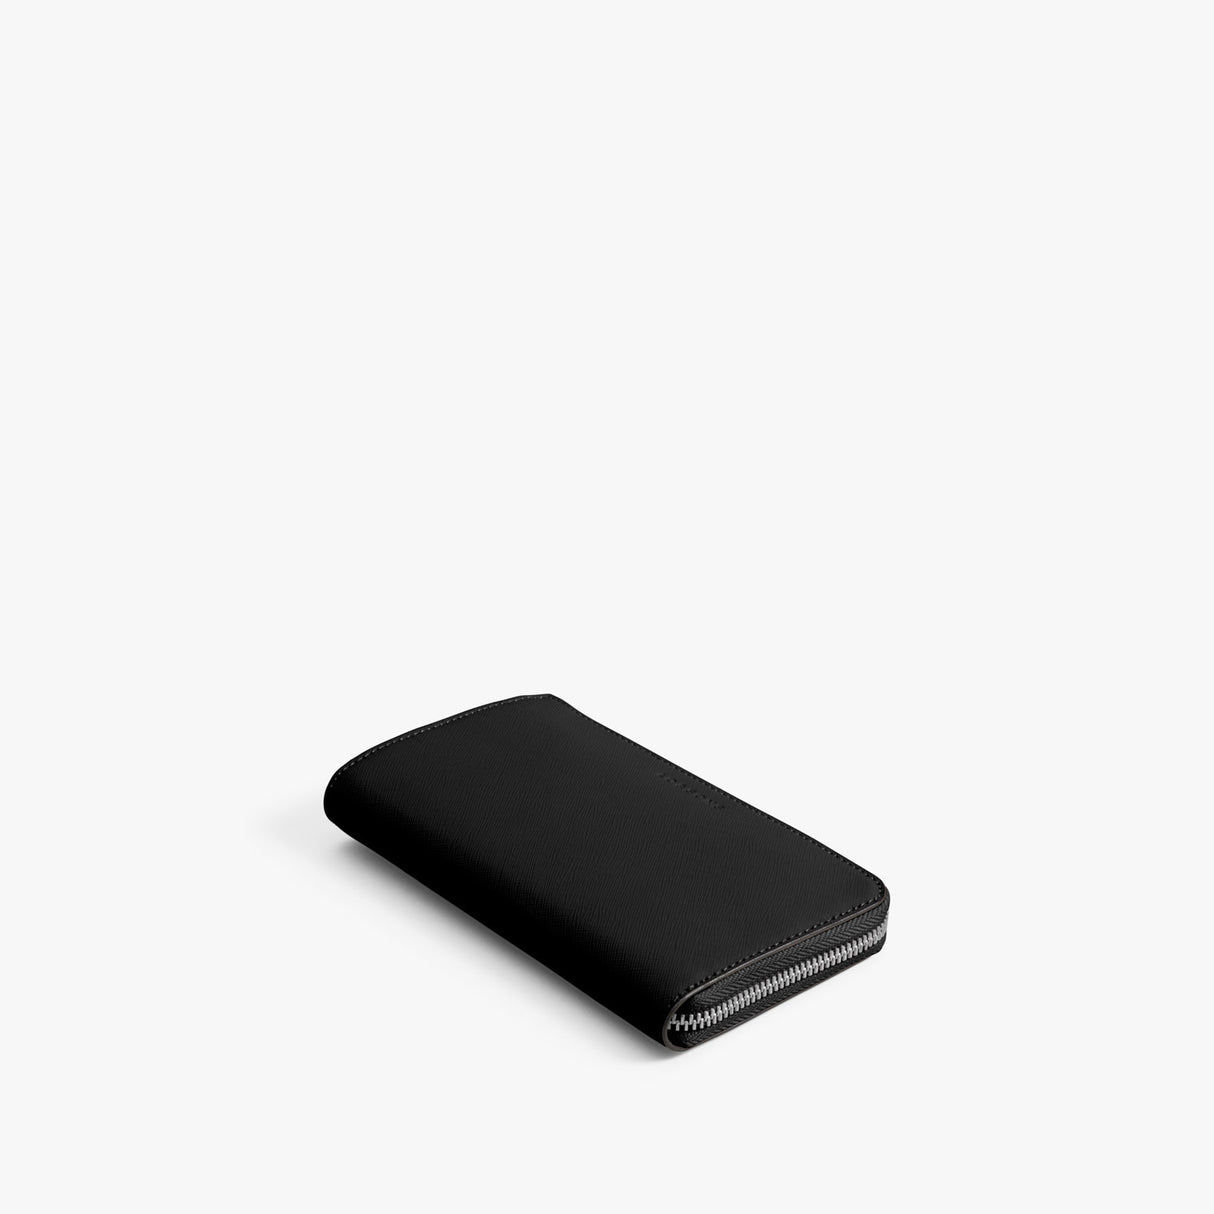 Front - Leather Wallet - Saffiano Leather - Black / Silver / Grey - Small Accessory - Lo & Sons